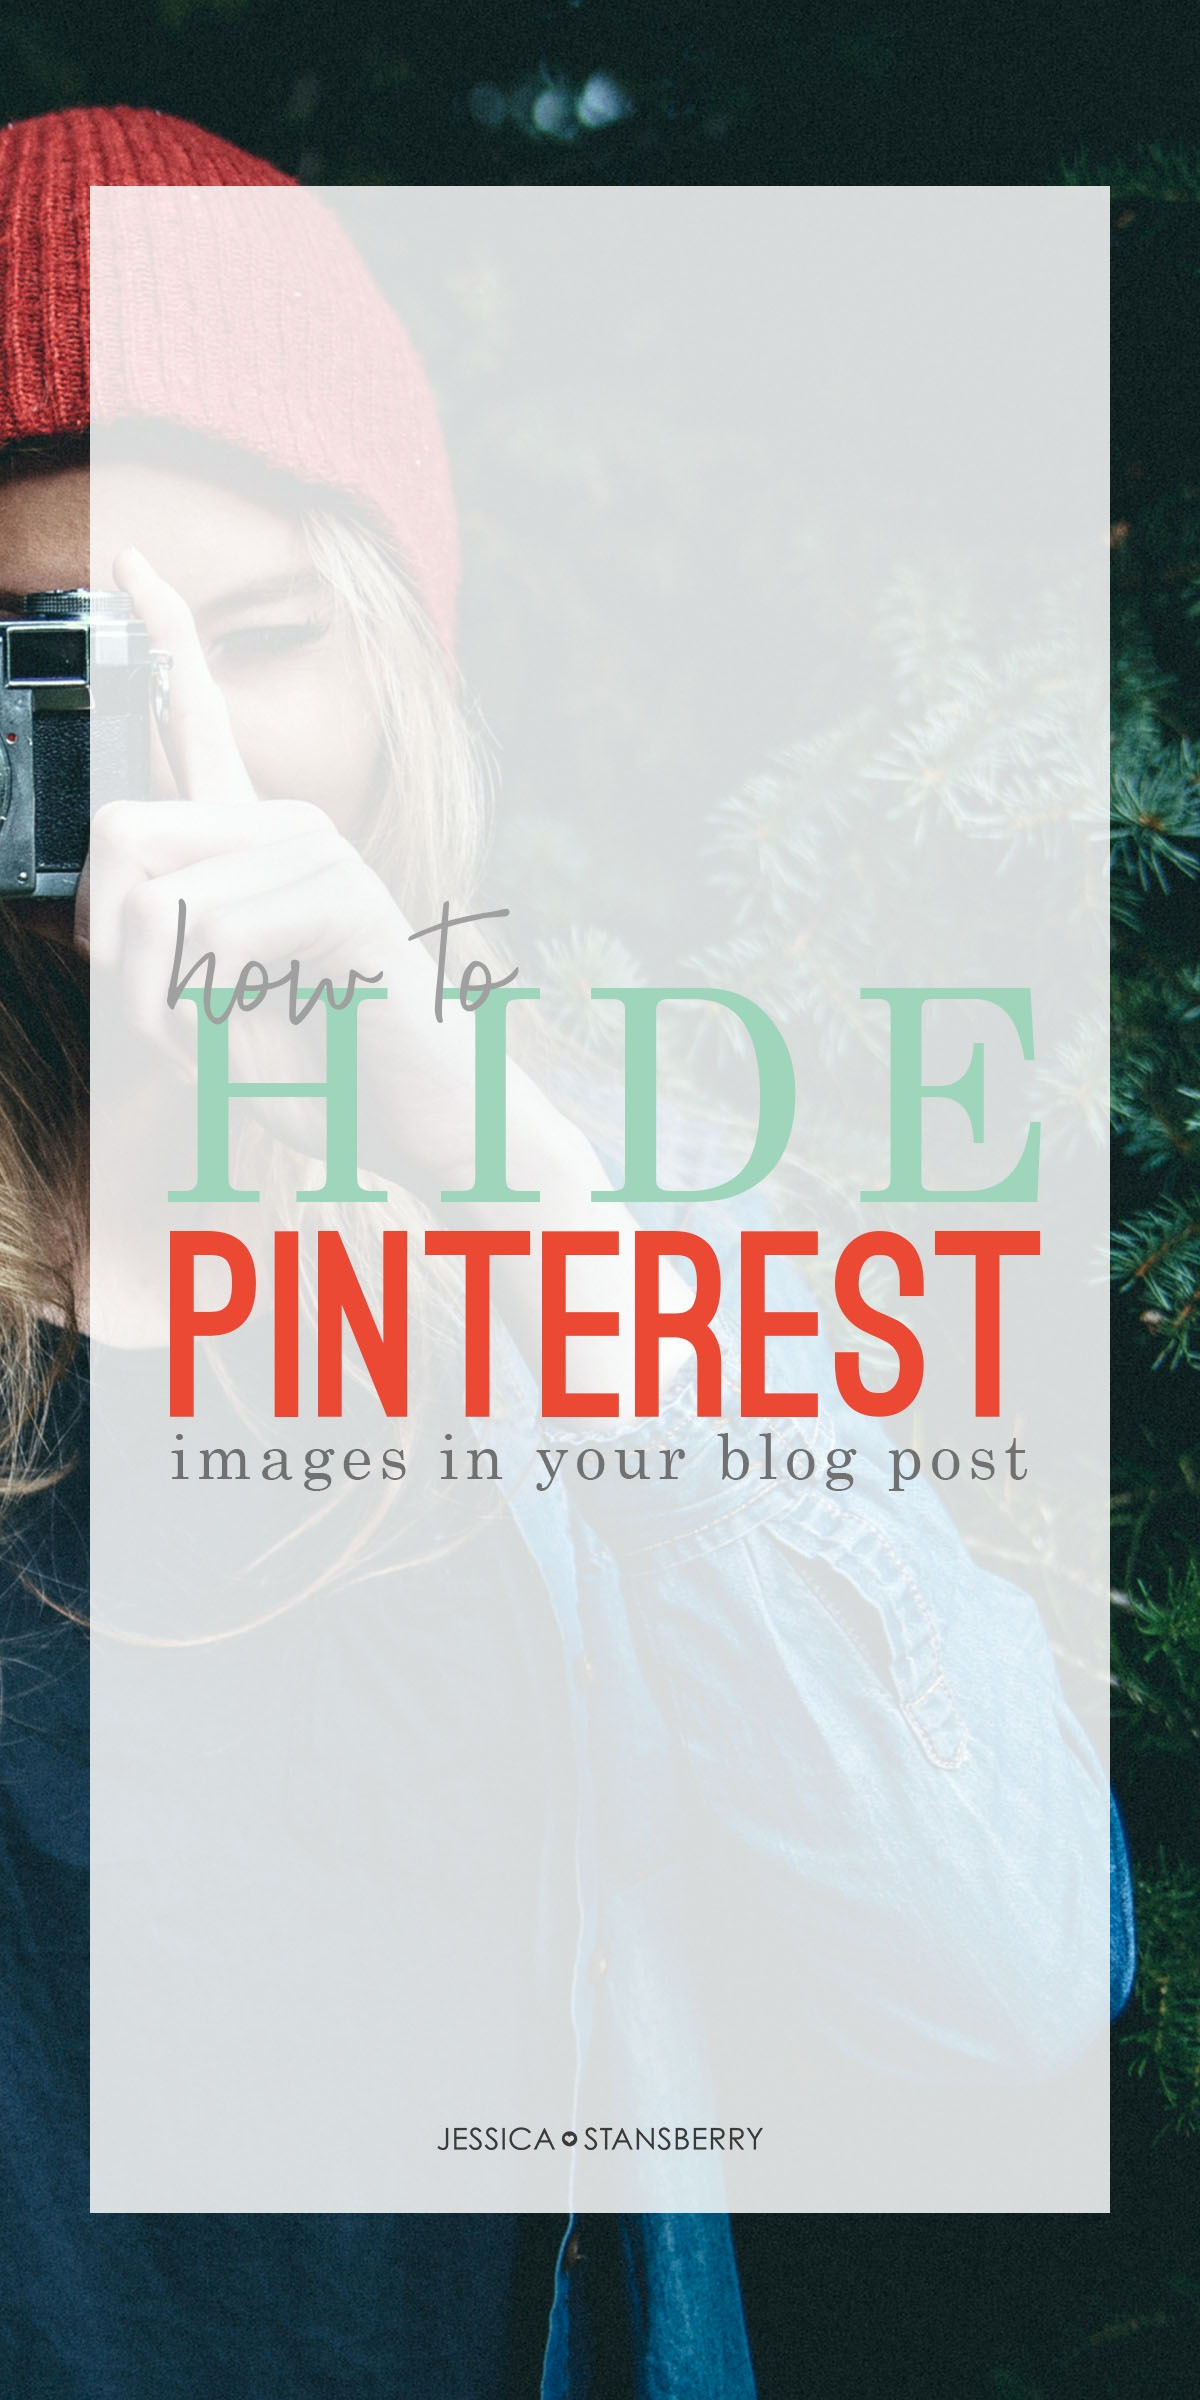 how to hide Pinterest images in blog posts